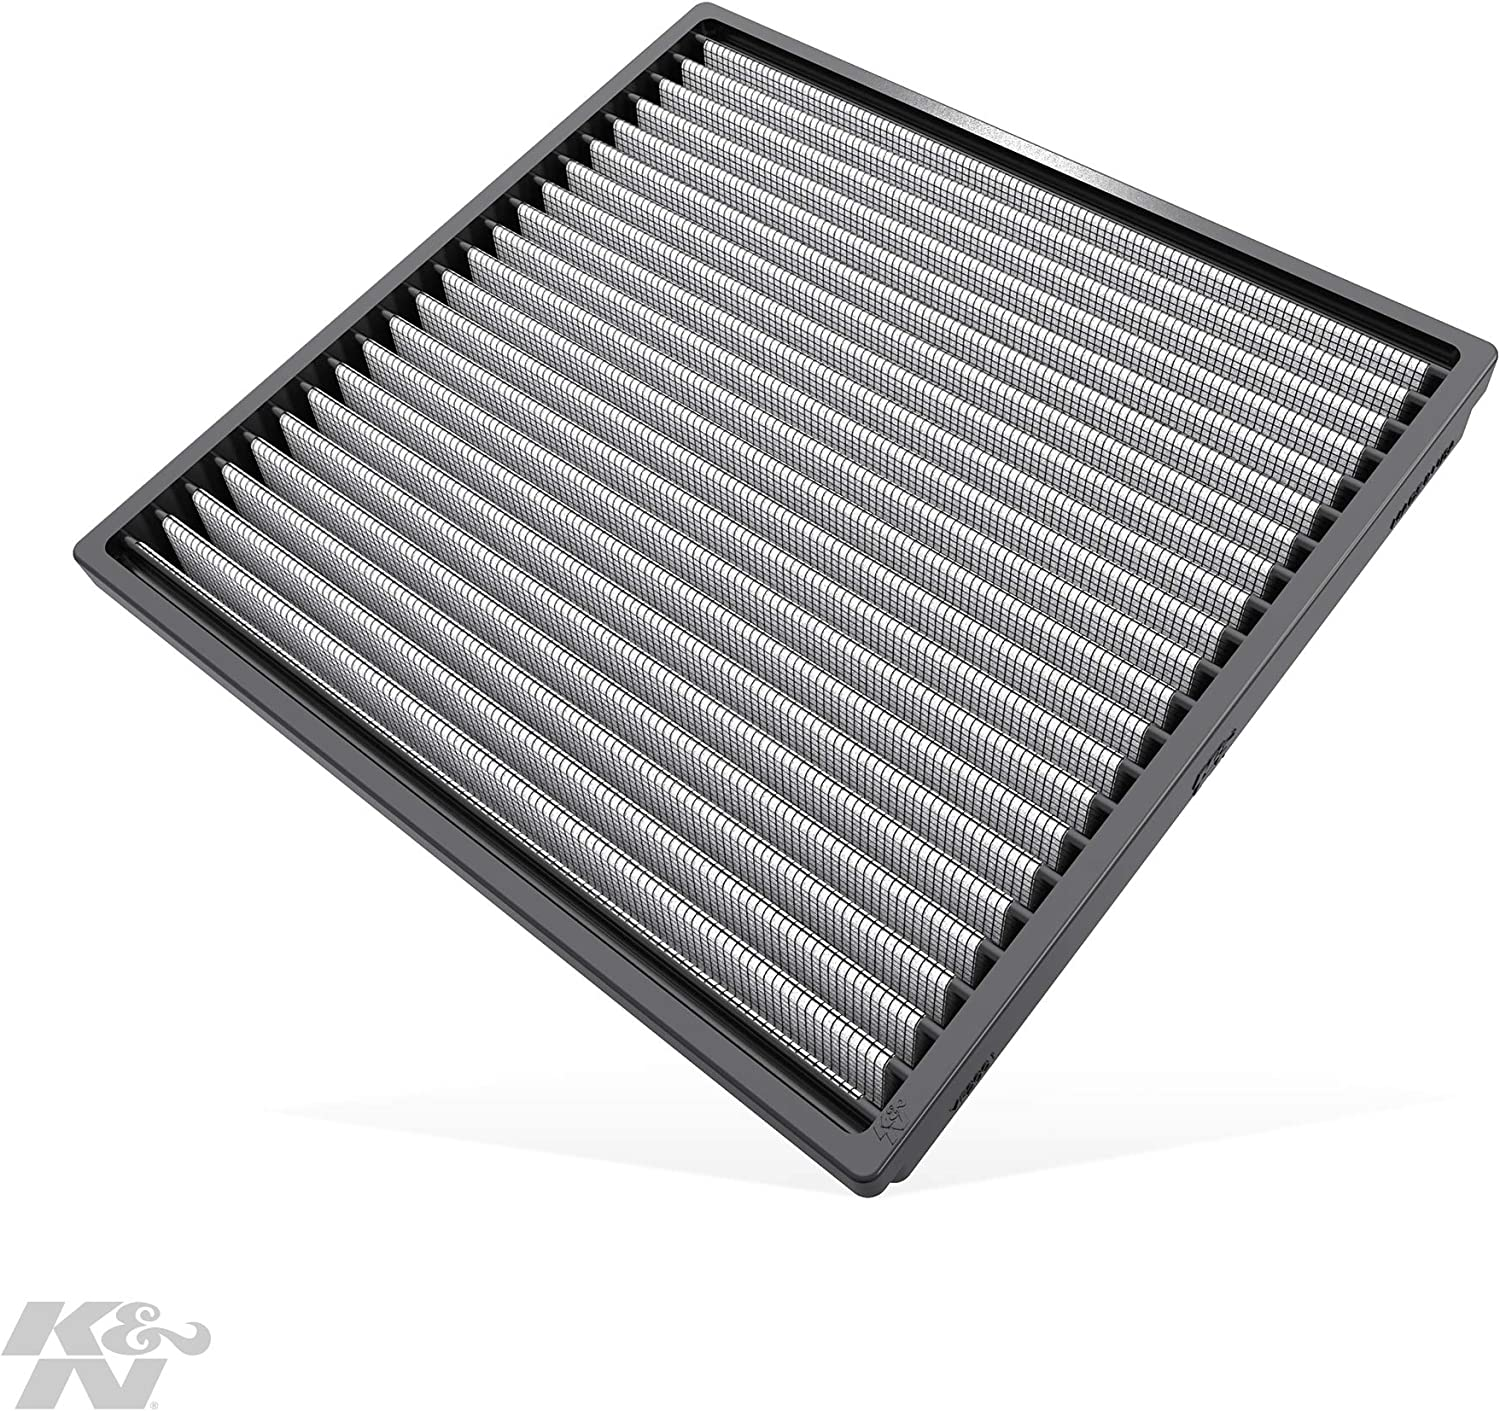 K/&N VF2001 Washable /& Reusable Cabin Air Filter Cleans and Freshens Incoming Air for your Acura Honda K/&N Engineering